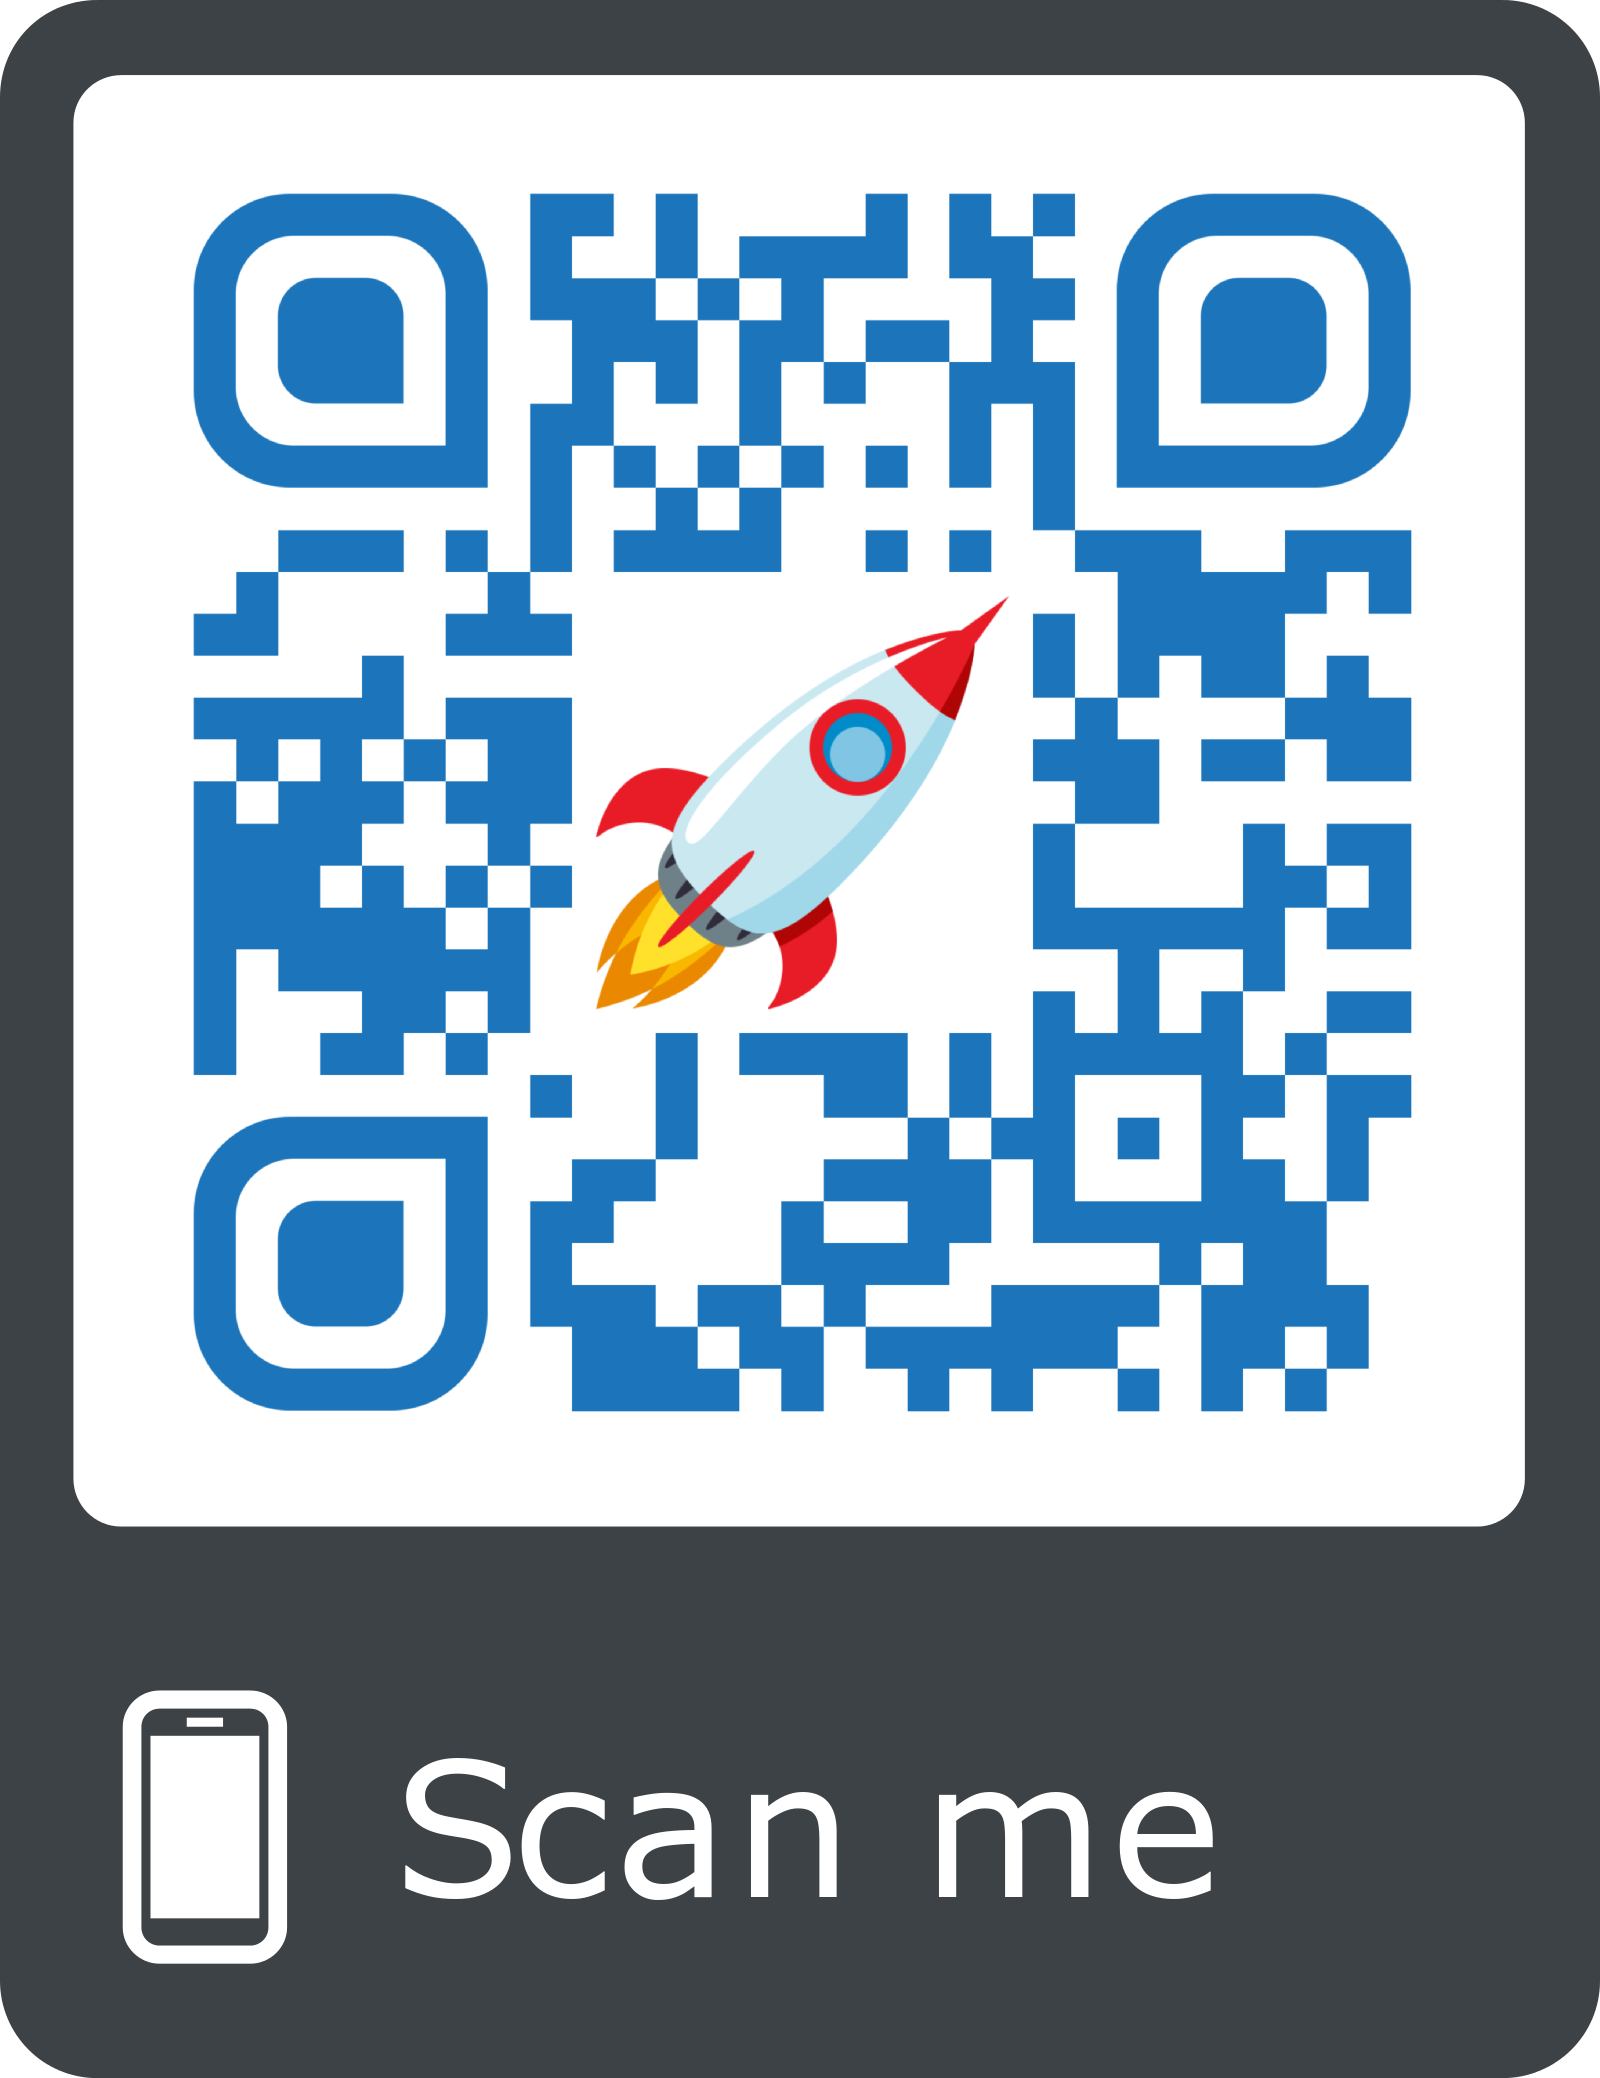 Scan this code to download the app Smile-tastic!